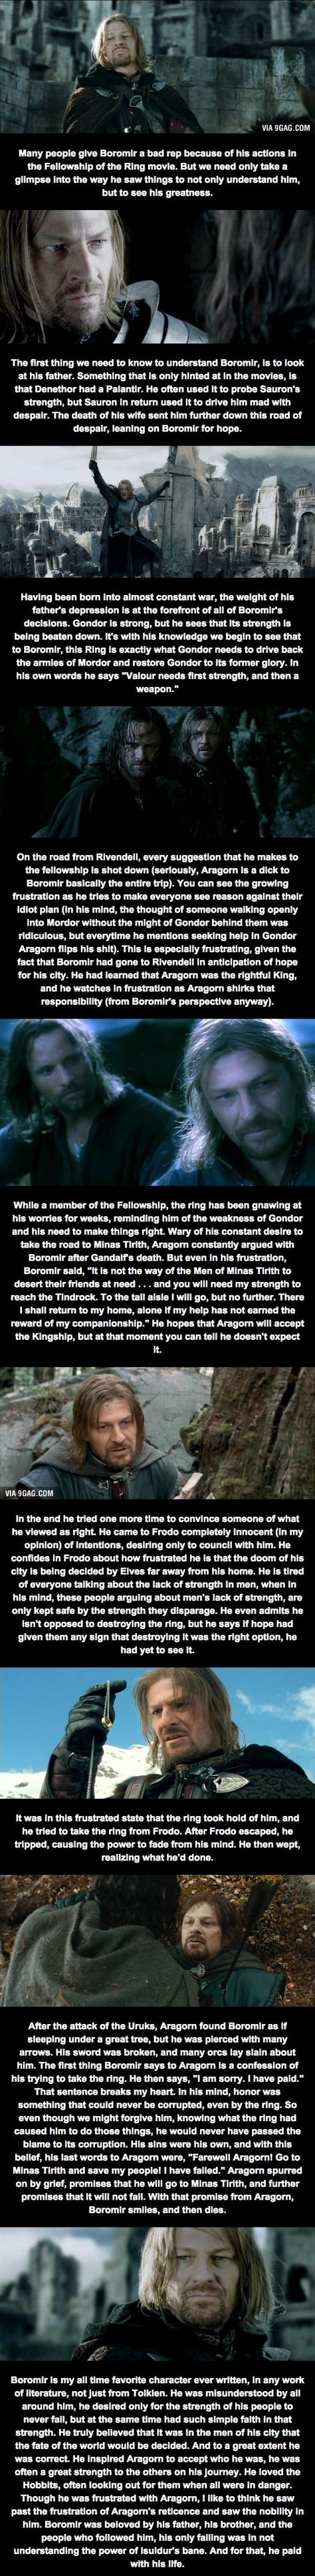 Relatively Unknown LoTR Facts (Part 2) - Boromir